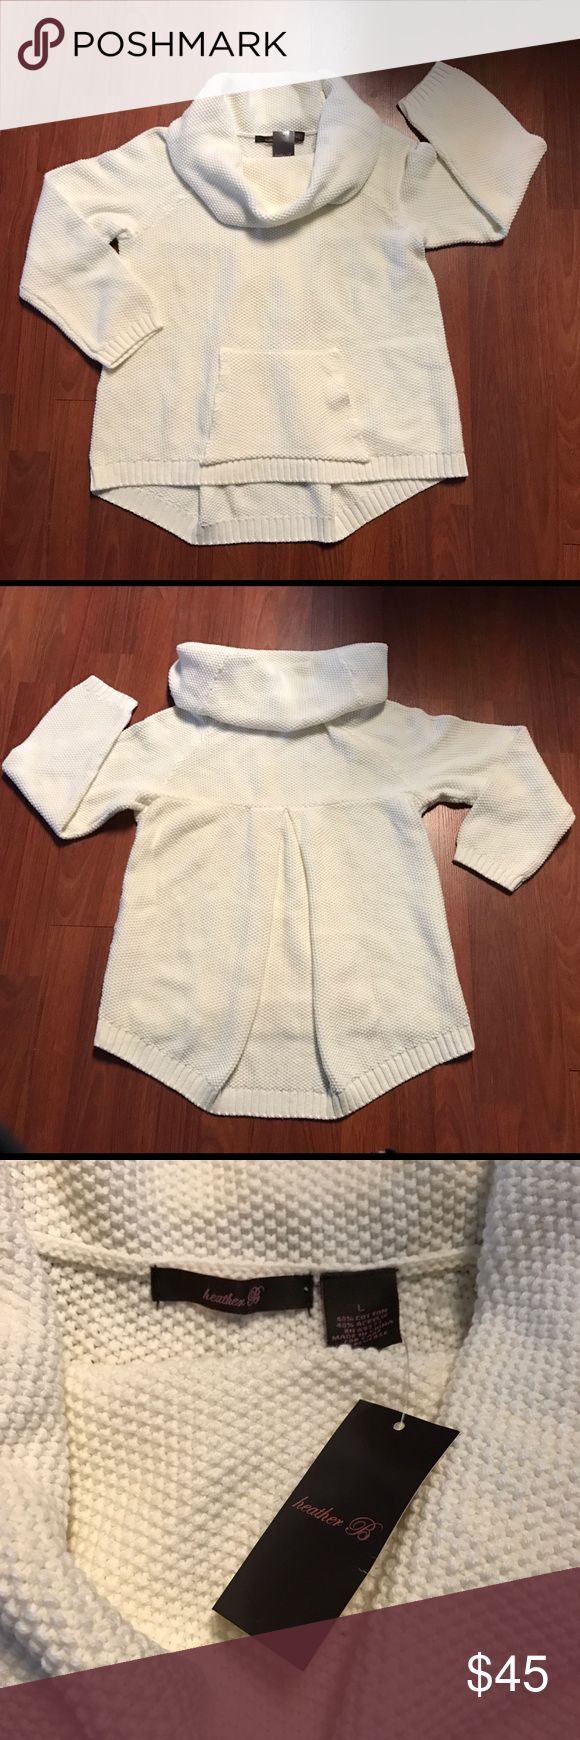 NWT Heather B Roll Neck Kangaroo Pocket Sweater 🔹 NEW WITH TAGS 🔹  Retail Cost: $108  Sz Large White (light cream) color. Cowl (roll) neck w/ kangaroo pocket, slight asymmetrical high-low design w/ pleated back for slouchy, relaxed fit. Mid to heavy weight. Hand wash.  💕 Premium skin and/or hair care samples come w/ every item!  I only ship in boxes - never plastic mailers! Heather B Sweaters Cowl & Turtlenecks